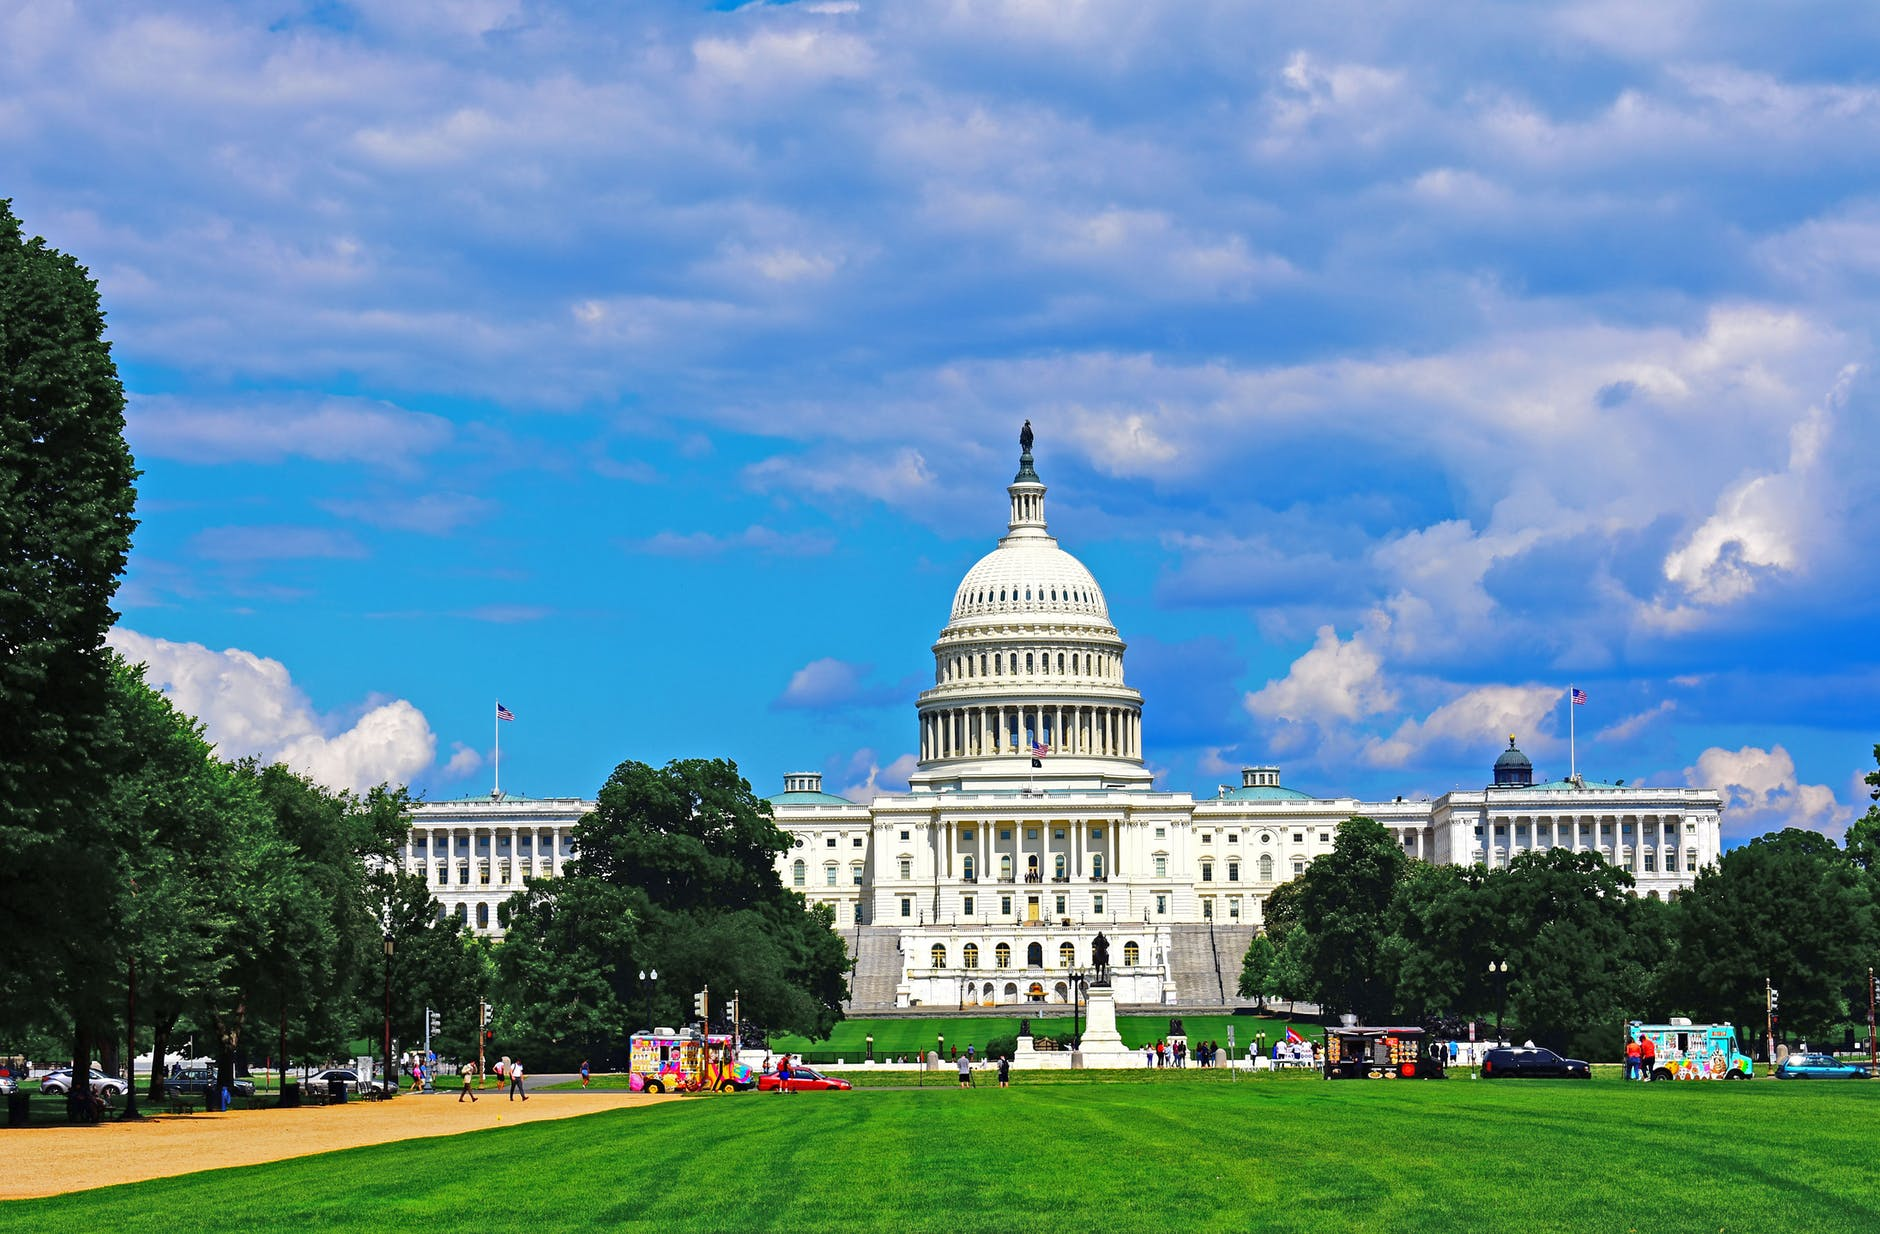 20 Family Friendly Attractions in Washington, D.C.